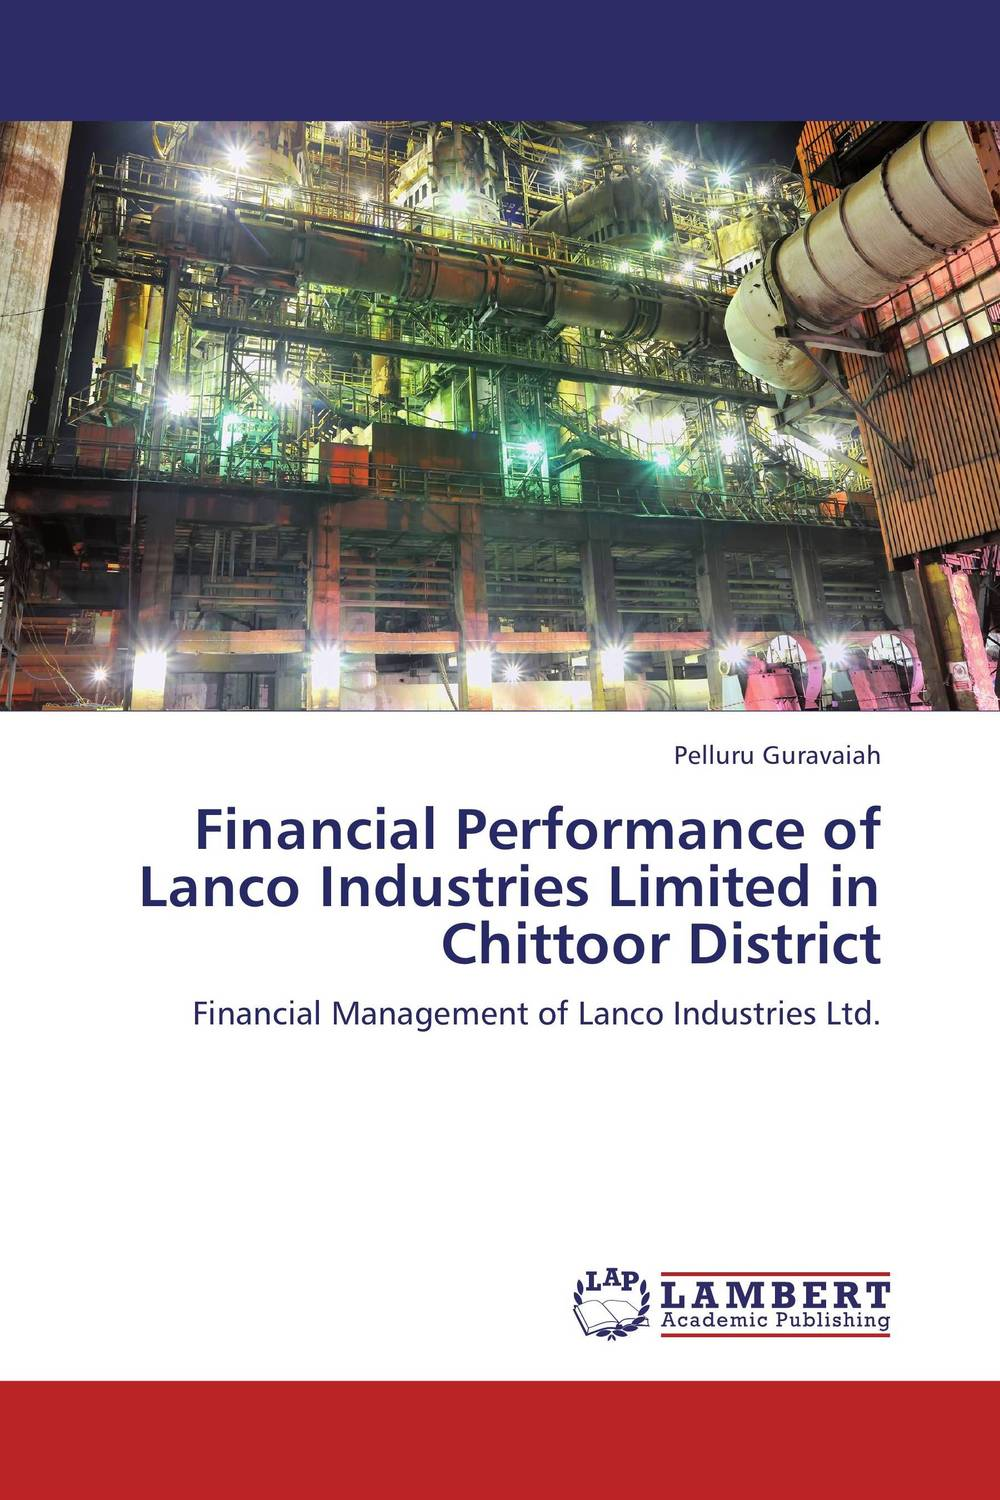 Financial Performance of Lanco Industries Limited in Chittoor District financial performance of lanco industries limited in chittoor district